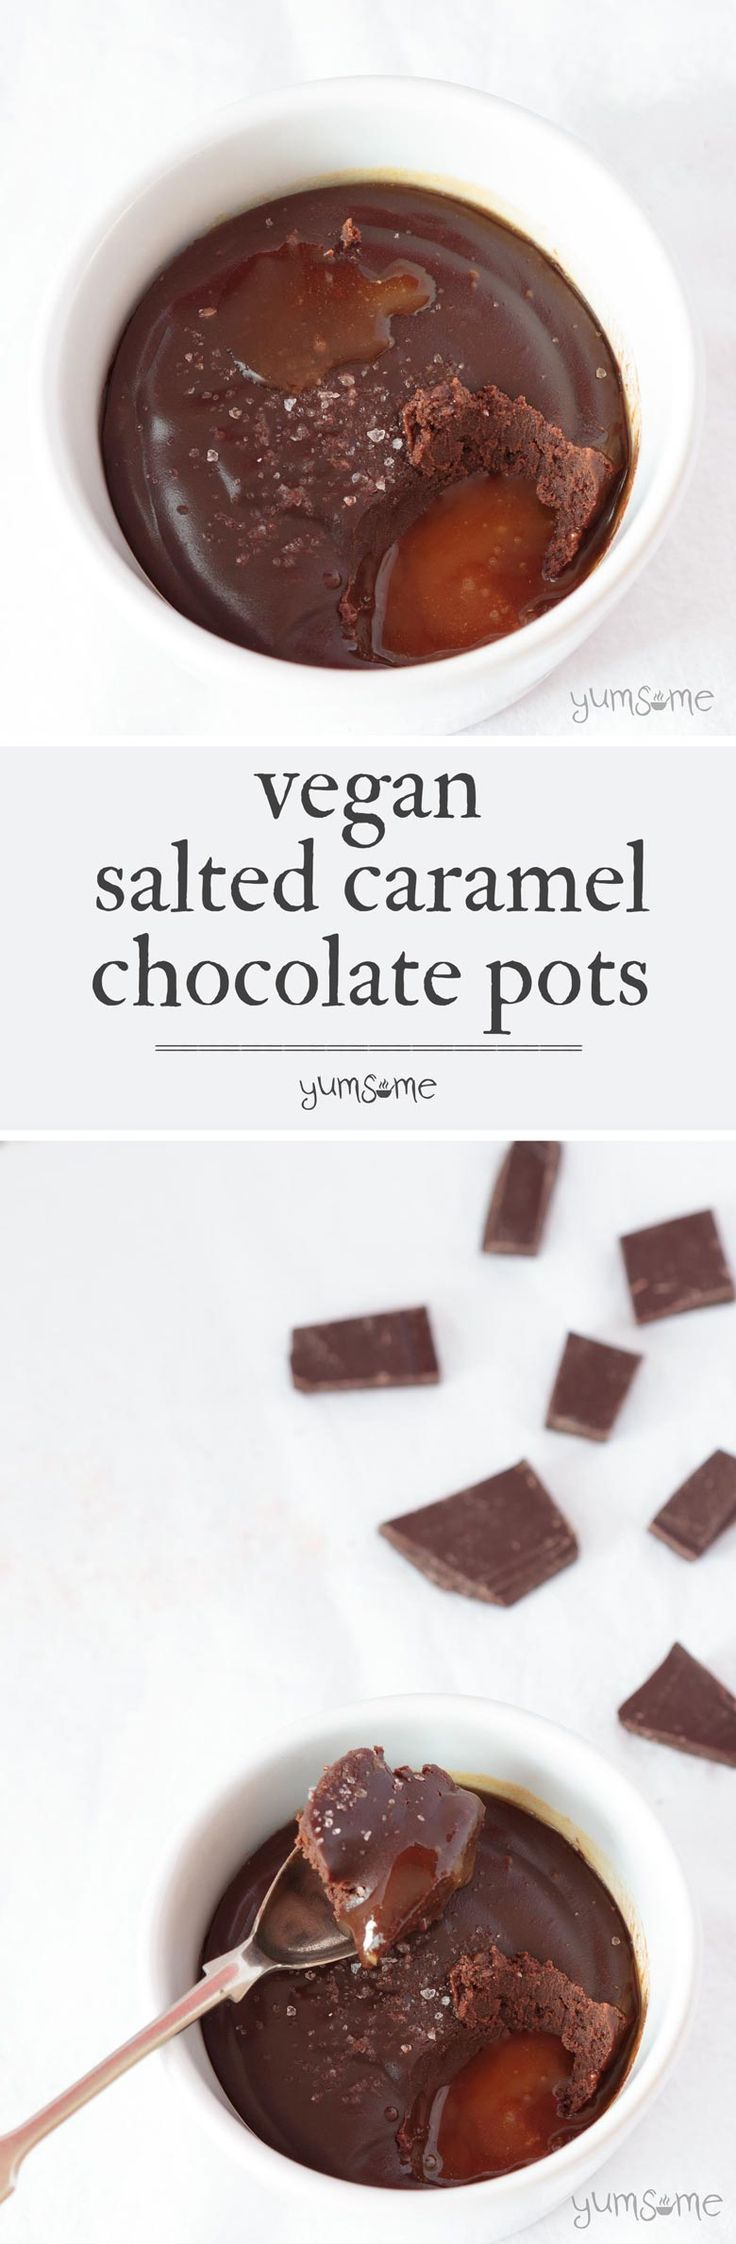 Vegan salted caramel chocolate pot; four ingredients, 10 minutes - all you need to make delicious pots of chocolatey delight! | http://yumsome.com